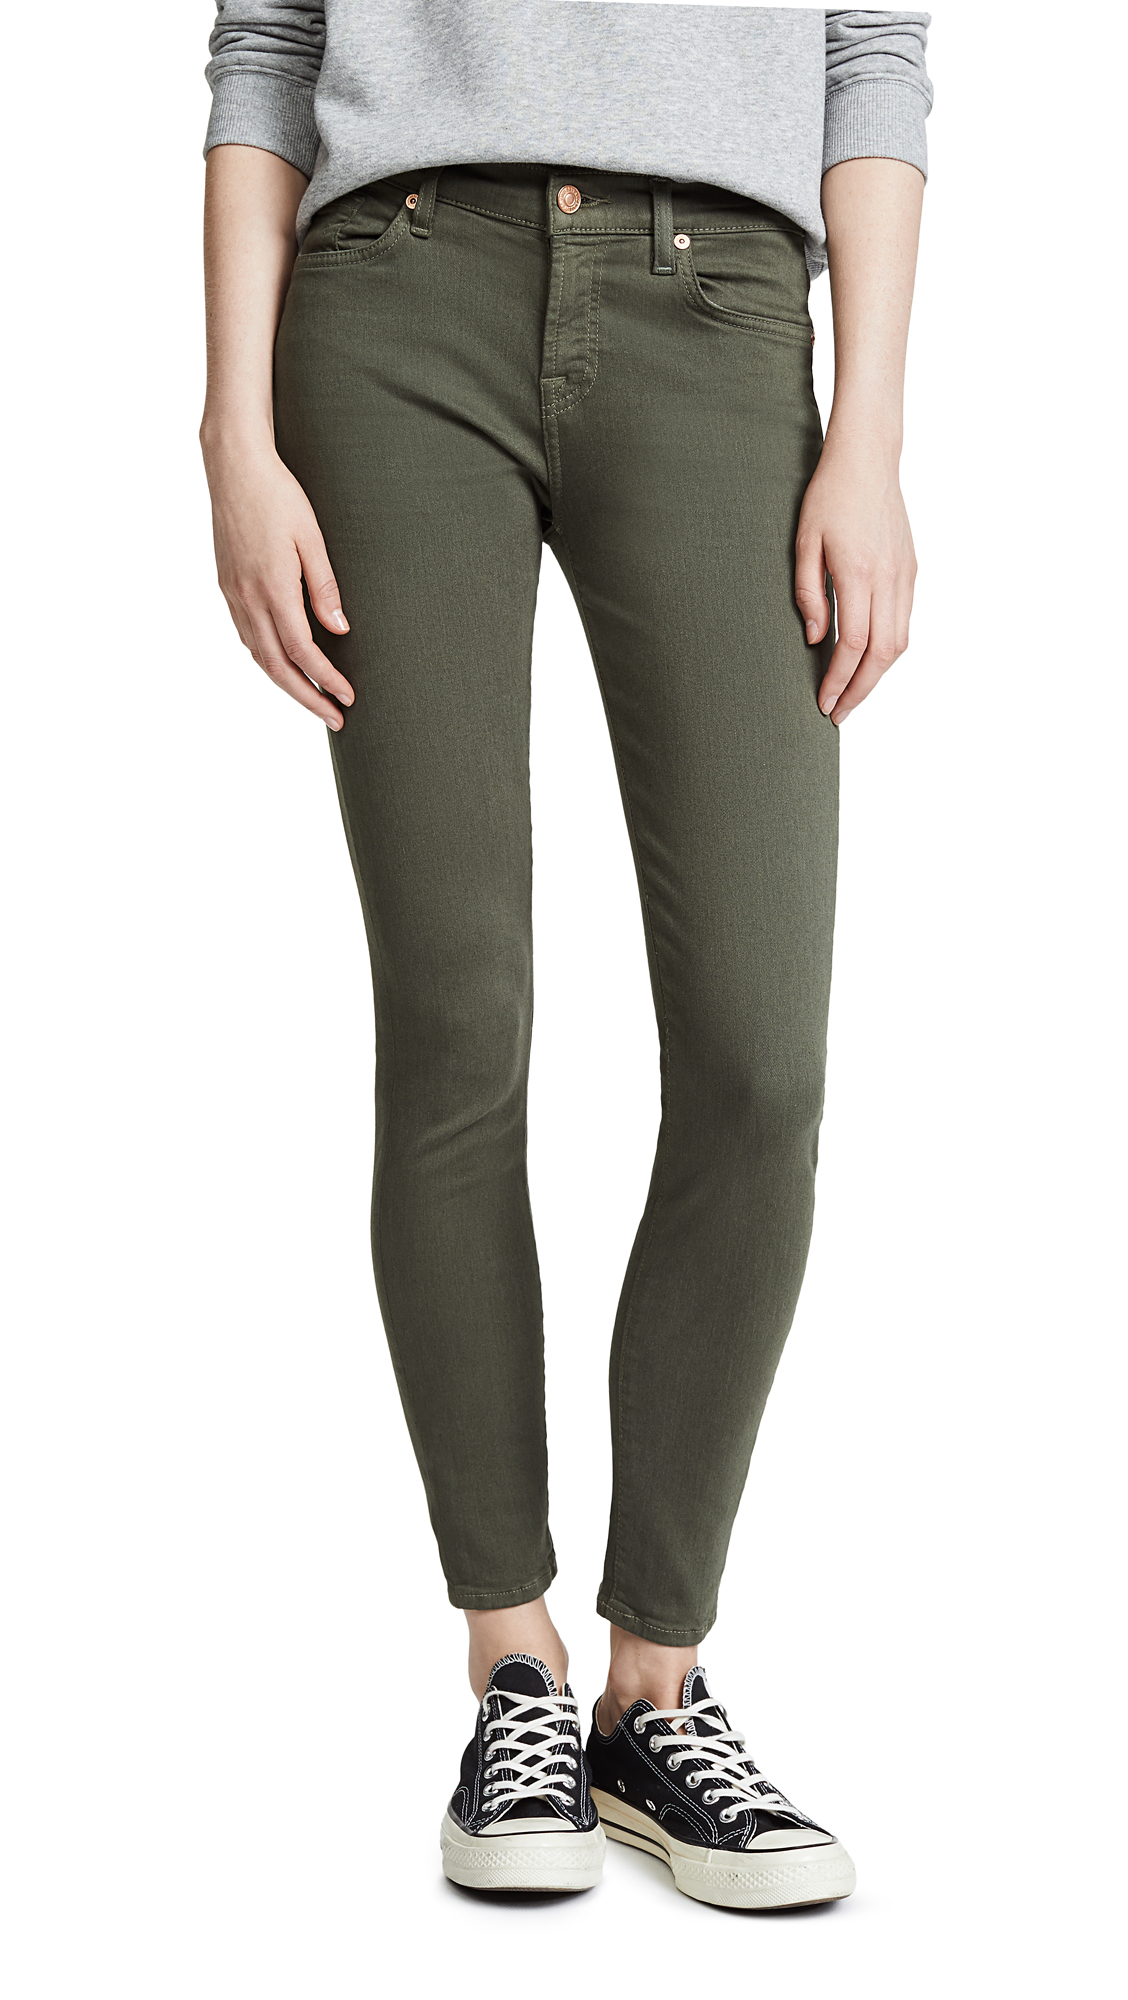 7 For All Mankind The Skinny Jeans In Army